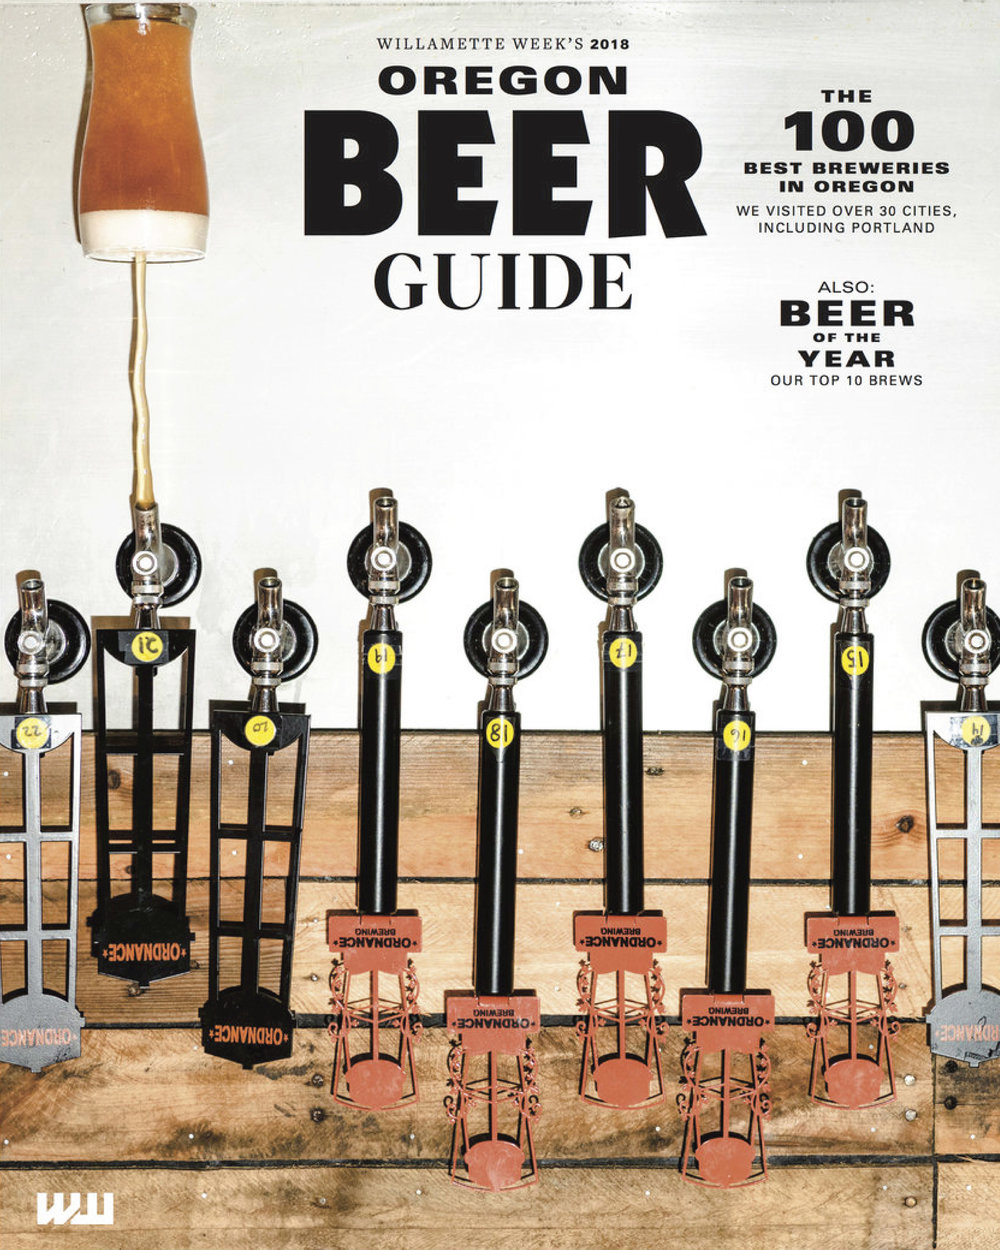 OREGON BEER MAGAZINE - Our magazine profiling and reviewing the best breweries across the state.